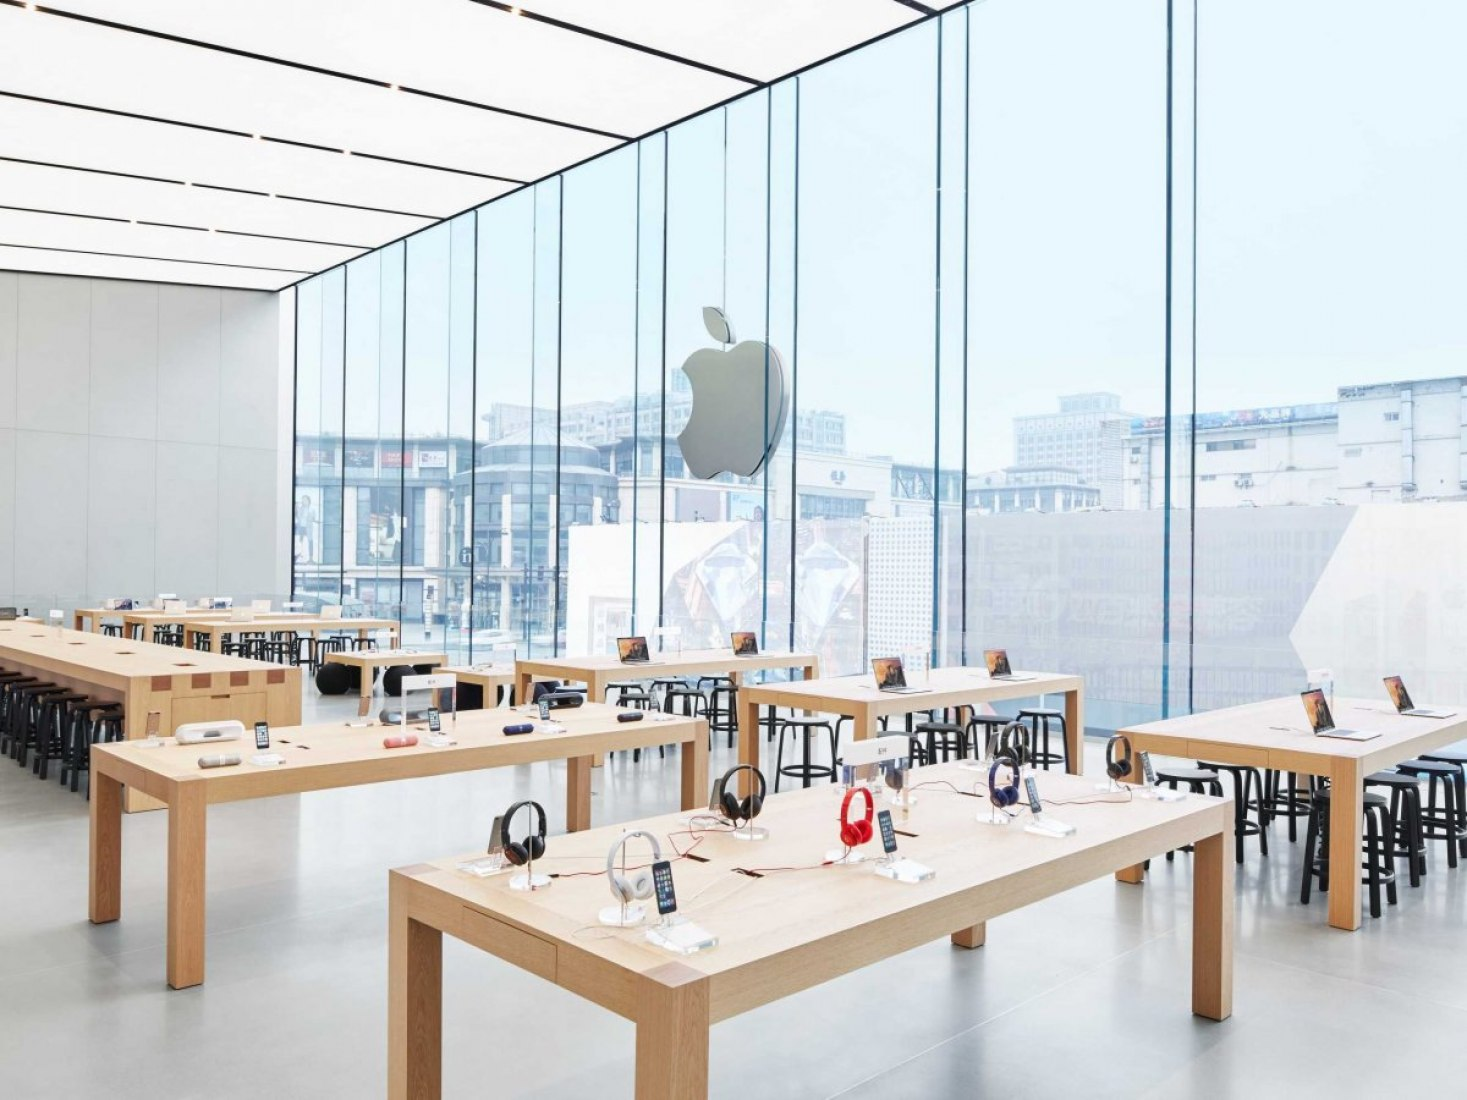 Apple store in Hangzhou by Foster + Partners. Photography courtesy of Apple